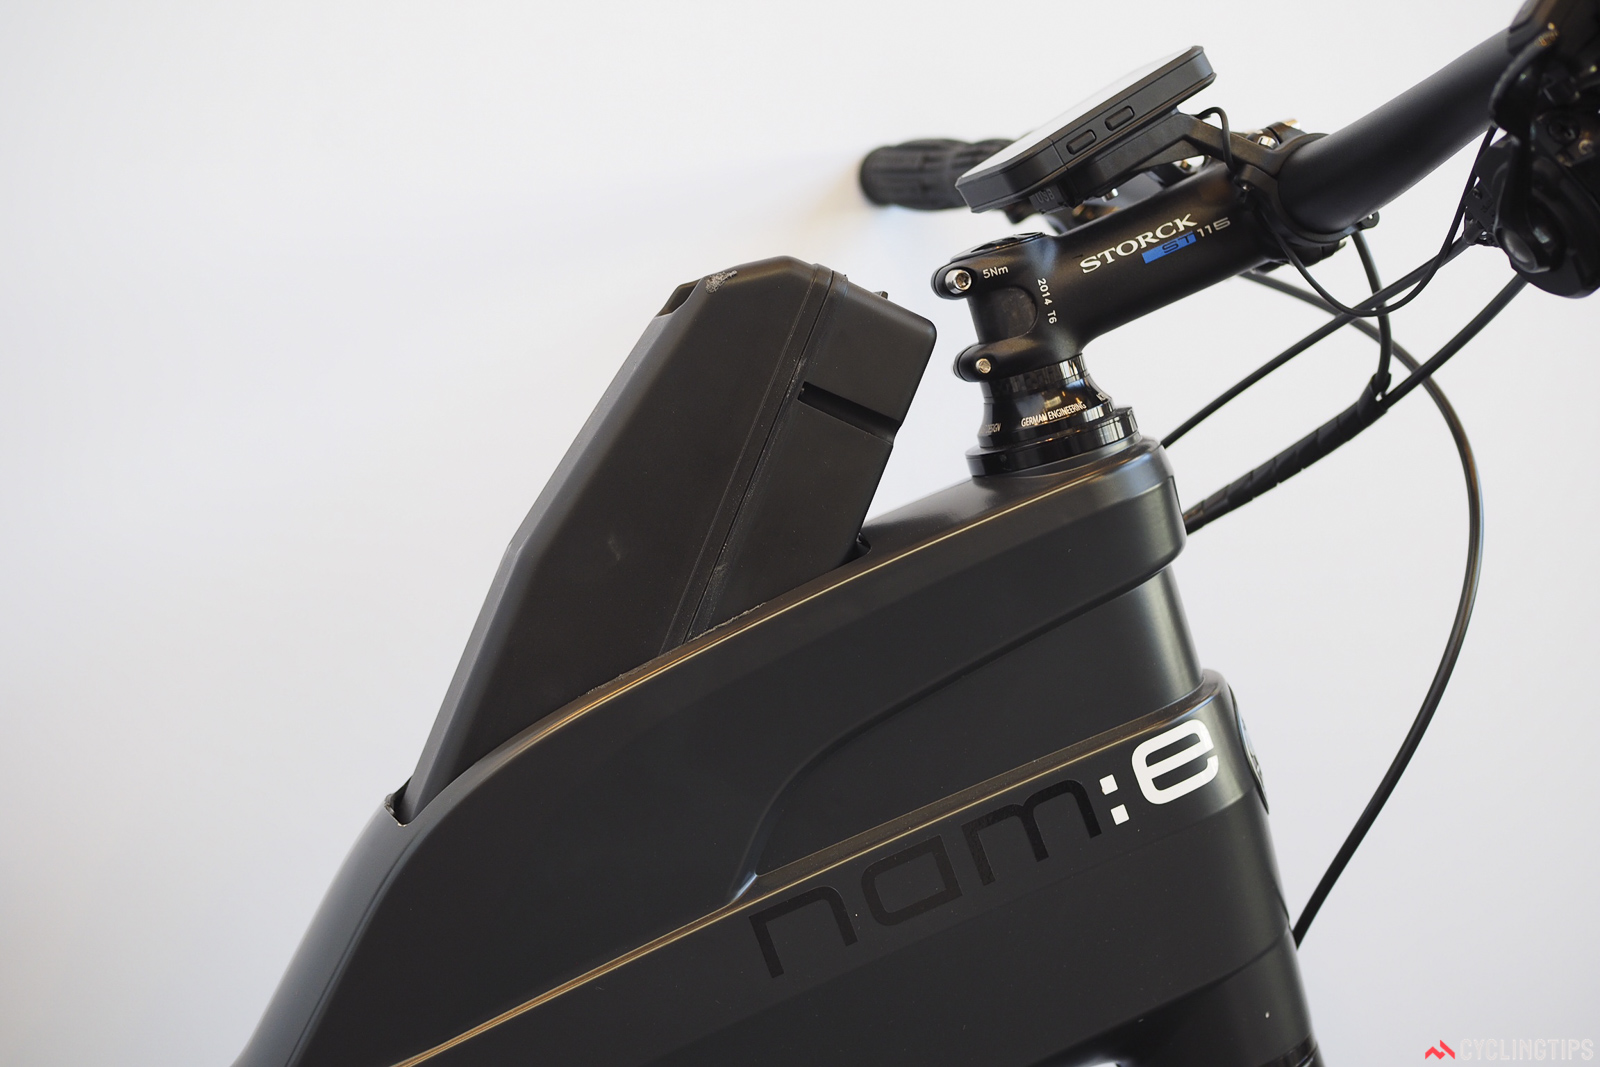 The battery is housed inside the frame and is easily accessible through a small hatch. Photo: James Huang.